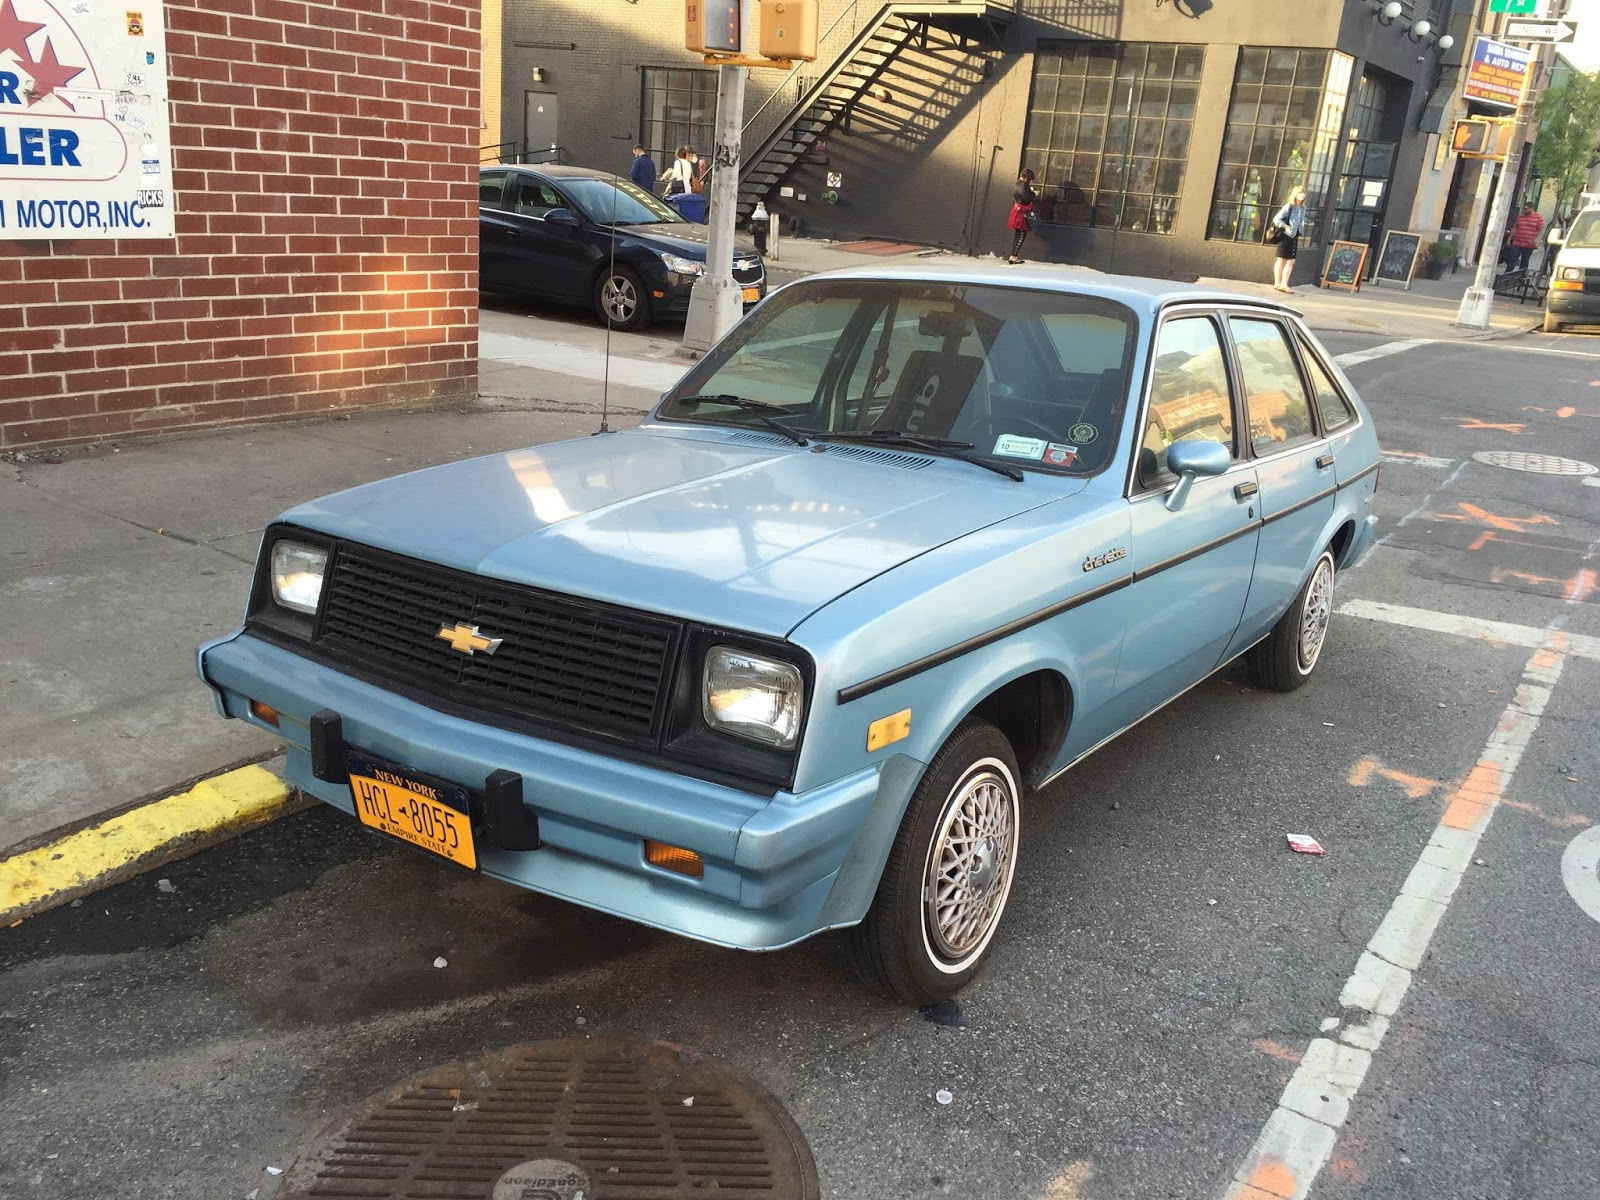 More Specifically This Is A 1986 Chevrolet Chevette Cs In Light Blue Poly One Has The Temerity To Be Sporting Spoiler Under Its Body Colored Per